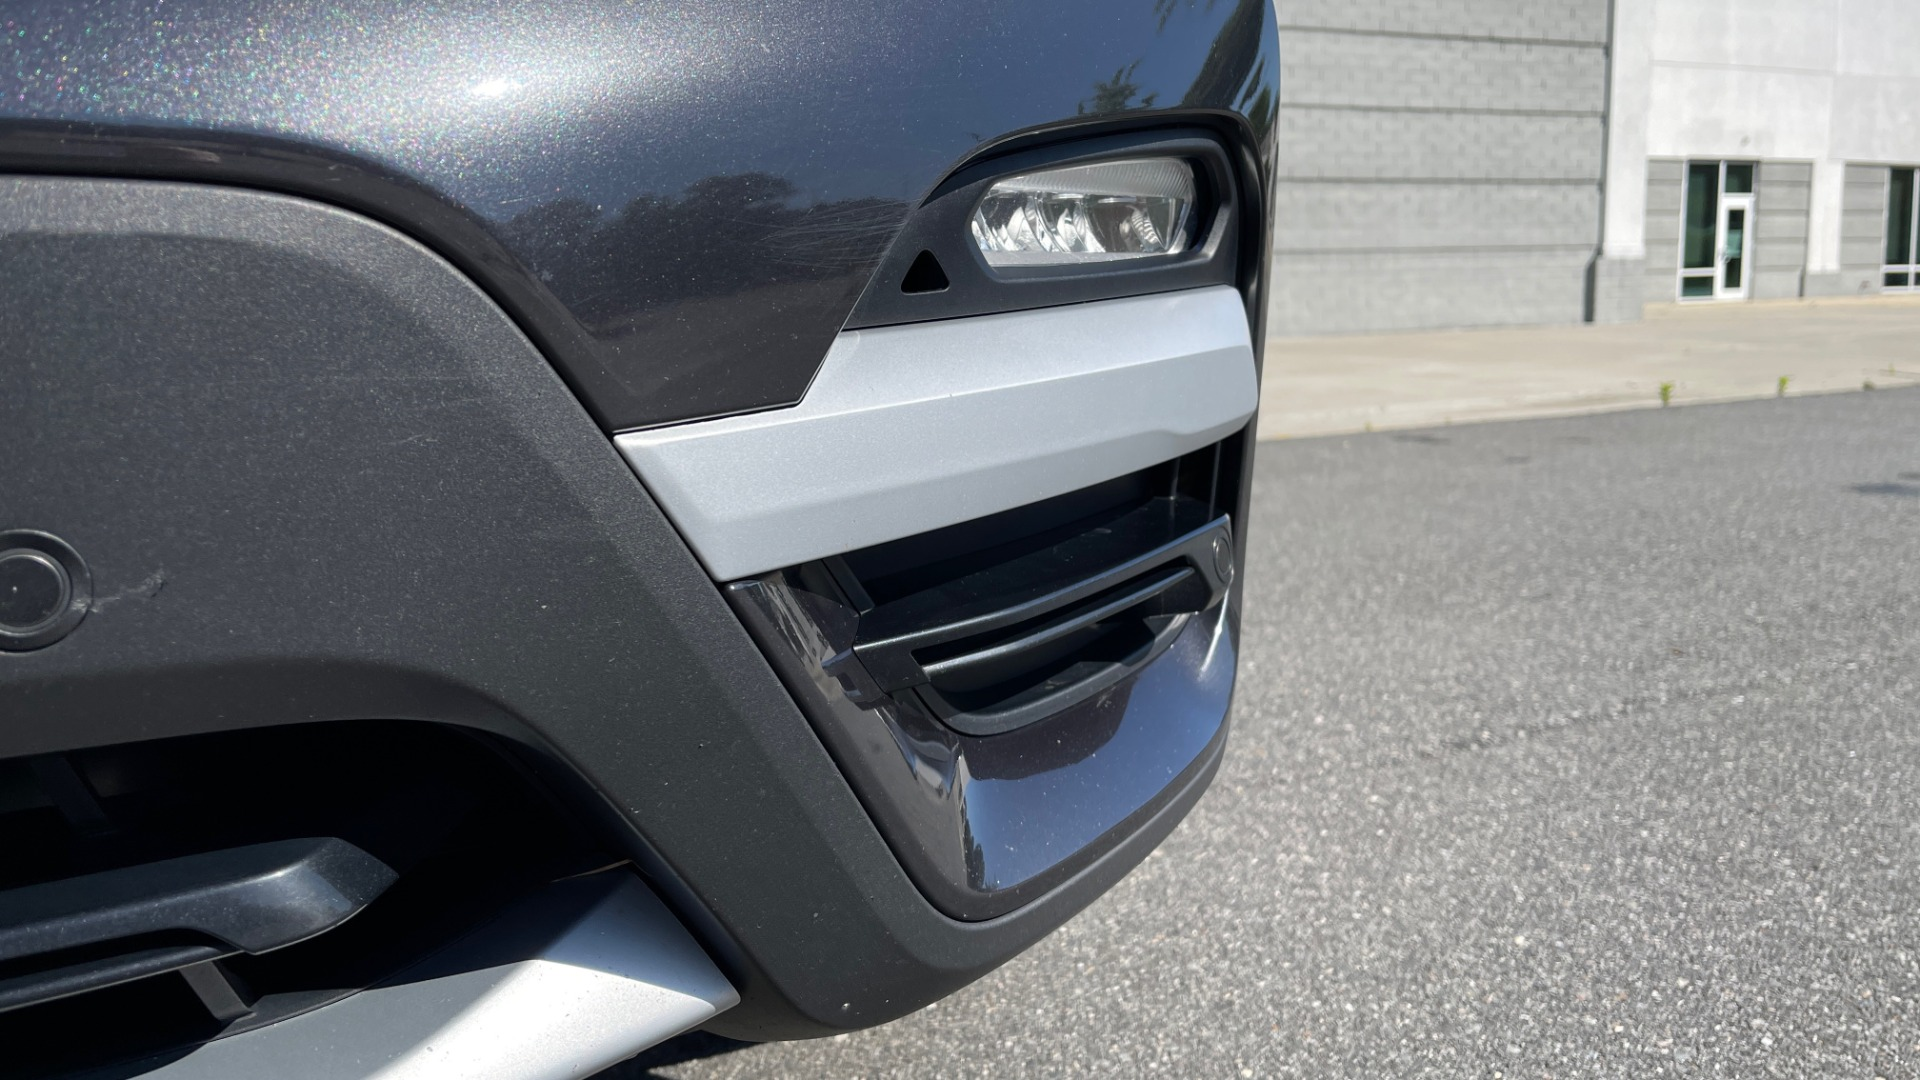 Used 2018 BMW X3 XDRIVE30I PREMIUM / NAV / DRVR ASST PLUS / CONV PKG / SUNROOF / REARVIEW for sale $33,795 at Formula Imports in Charlotte NC 28227 17